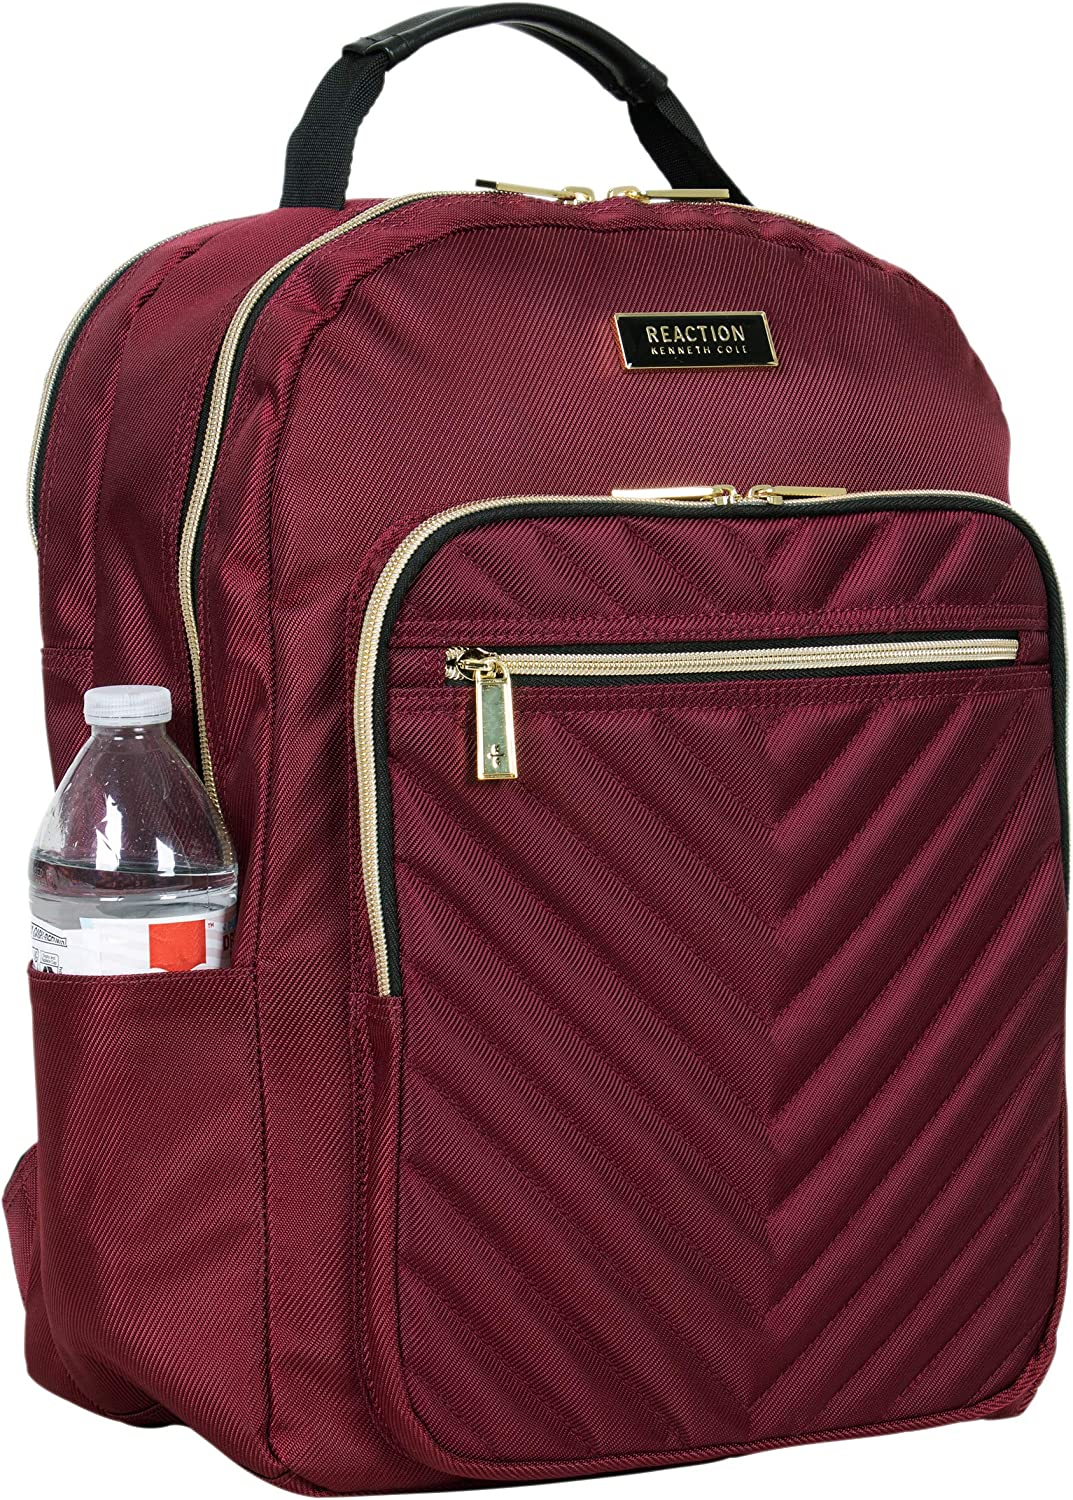 Kenneth Cole Reaction Chelsea Womens Chevron Quilted 15-Inch Laptop /& Tablet Fashion Travel Backpack